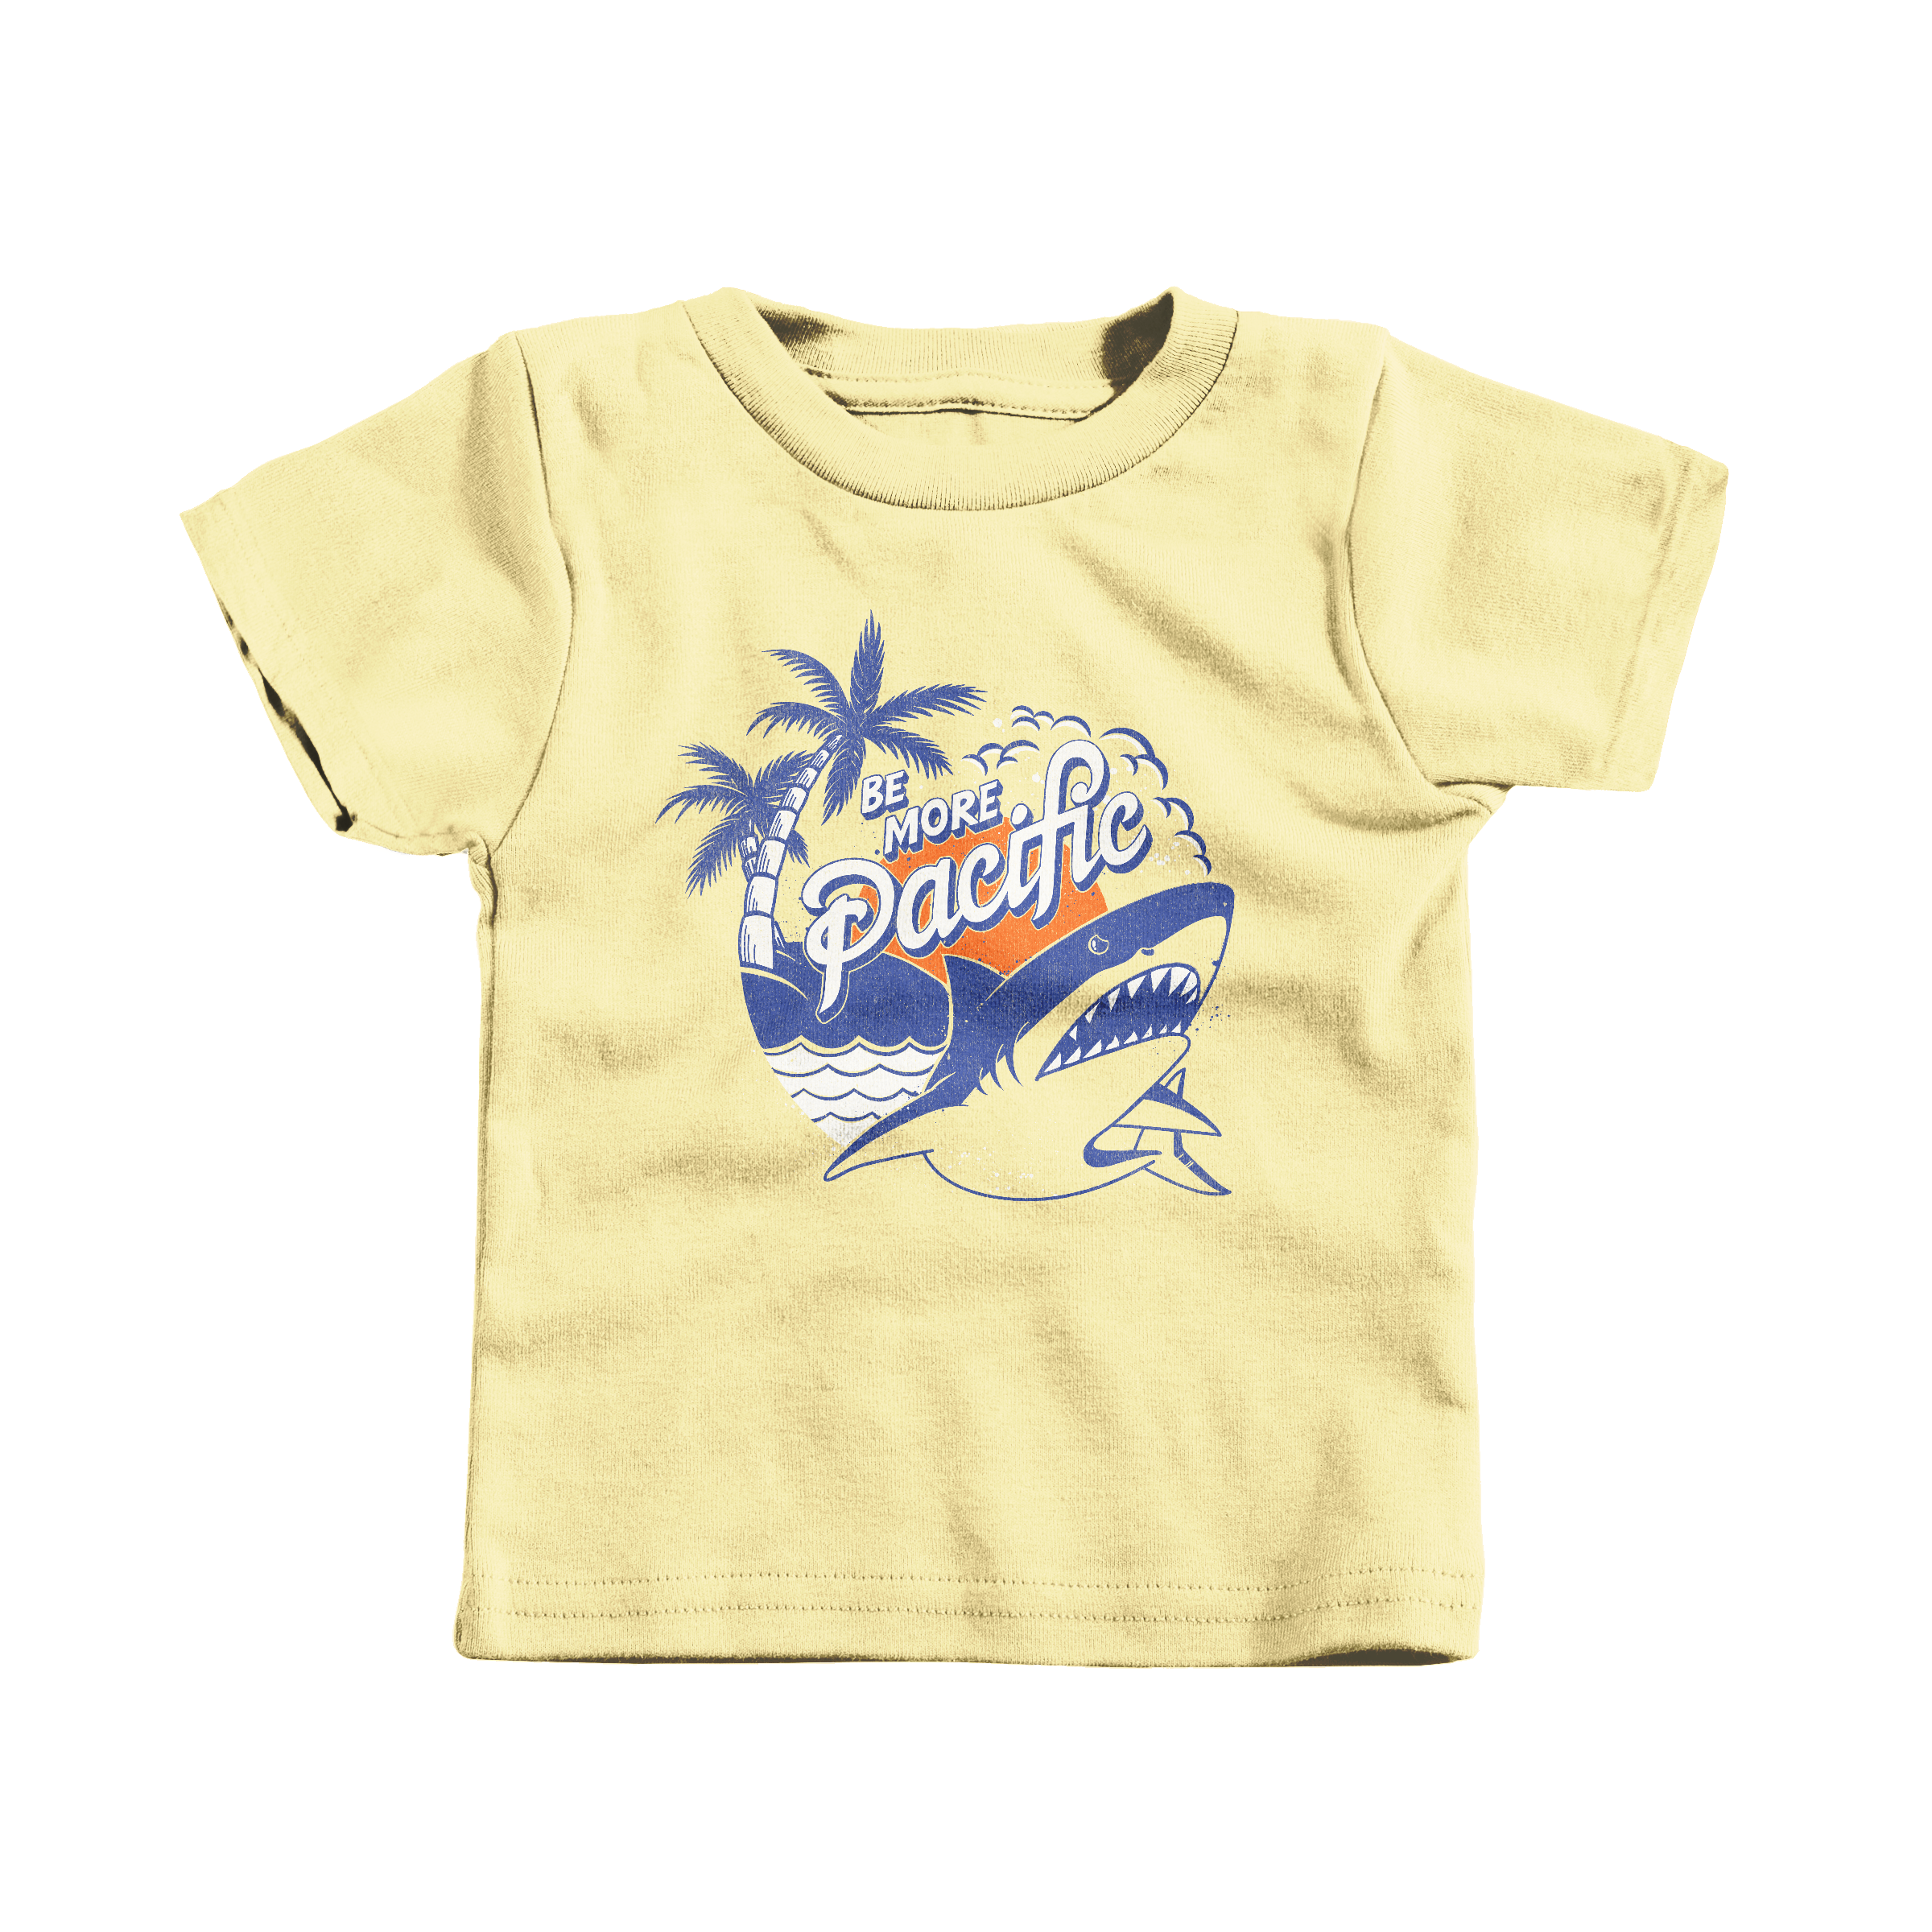 Be More Pacific Butter (T-Shirt)